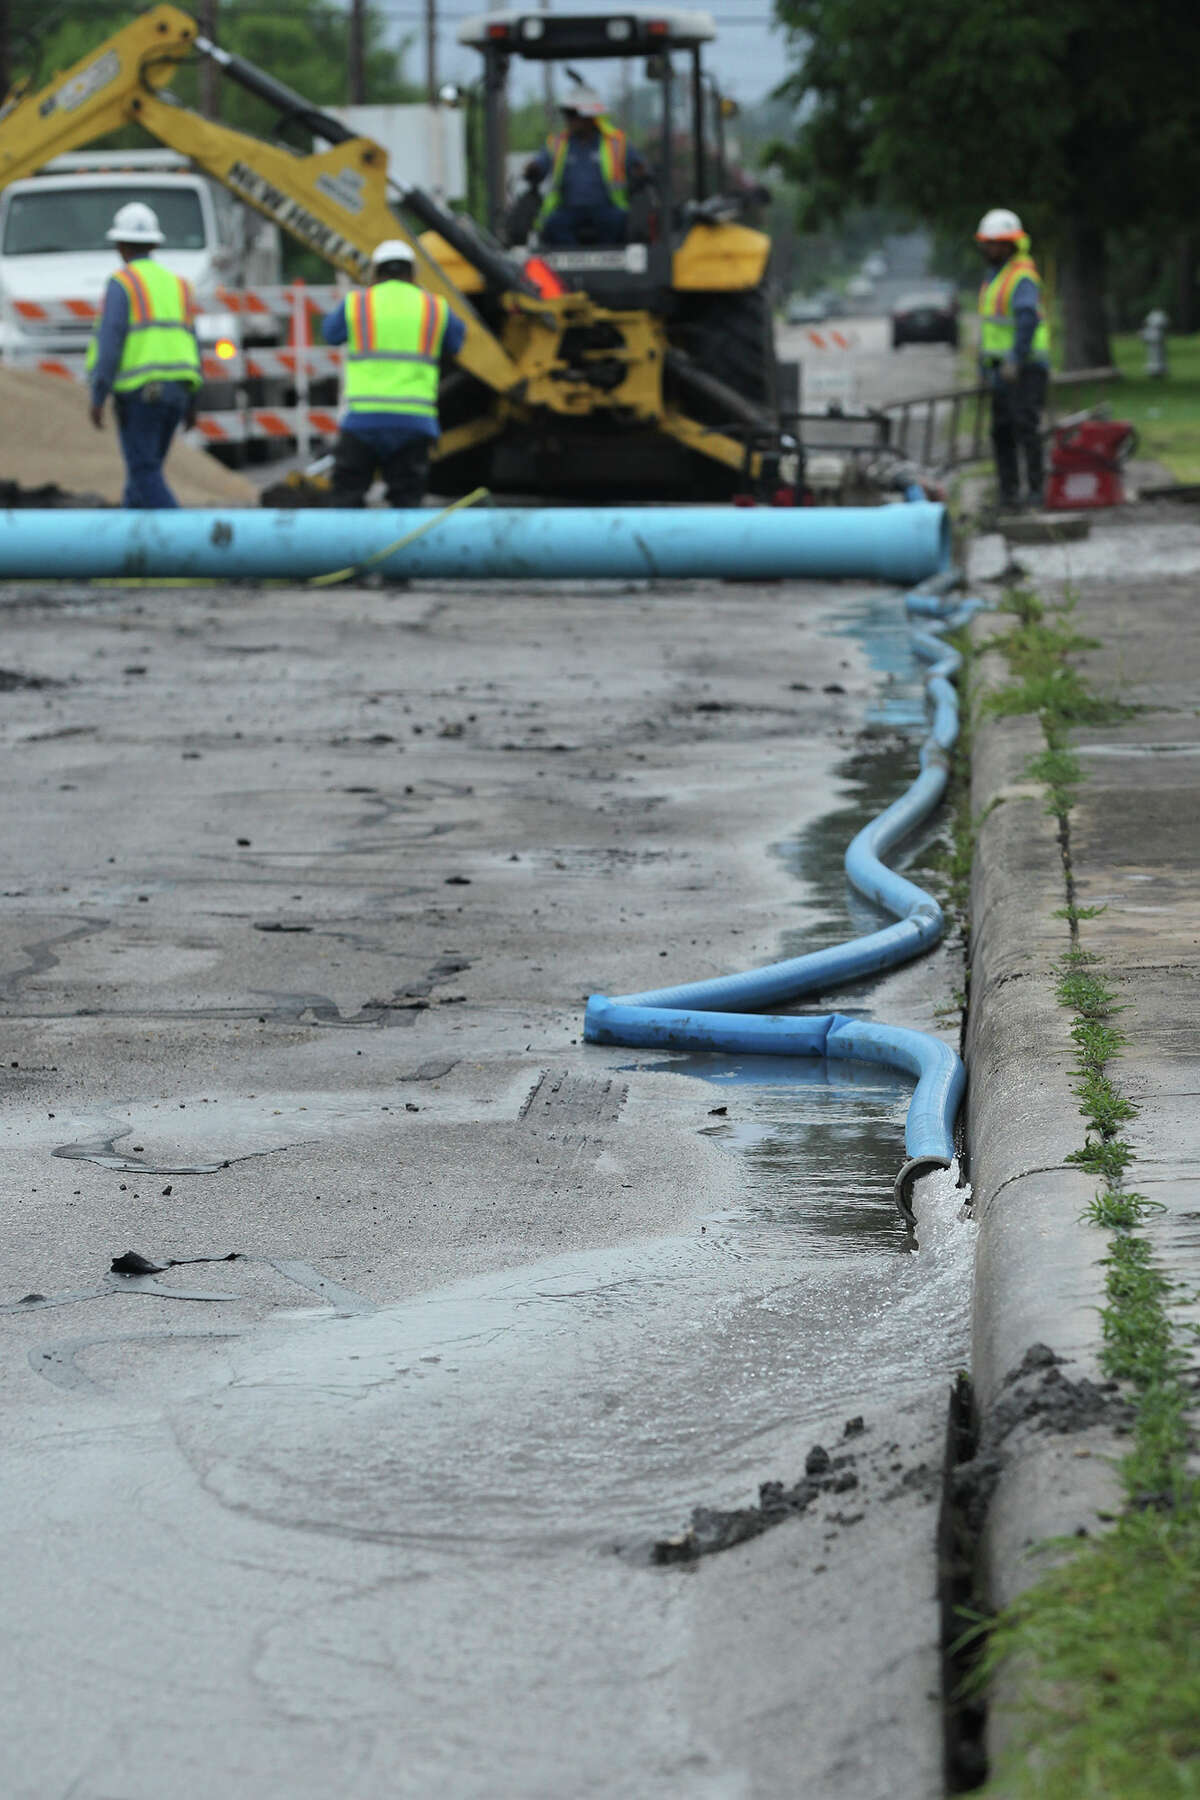 Workers for San Antonio Water System work to repair a water main that broke in the early morning hours of Monday June 15, 2015 on the 300 block of Essex near the intersection of Hackberry on the city's East Side. The crew plans on replacing a broken concrete main with a new pvc pipe. Essex will remian closed most of the day until repairs are completed.